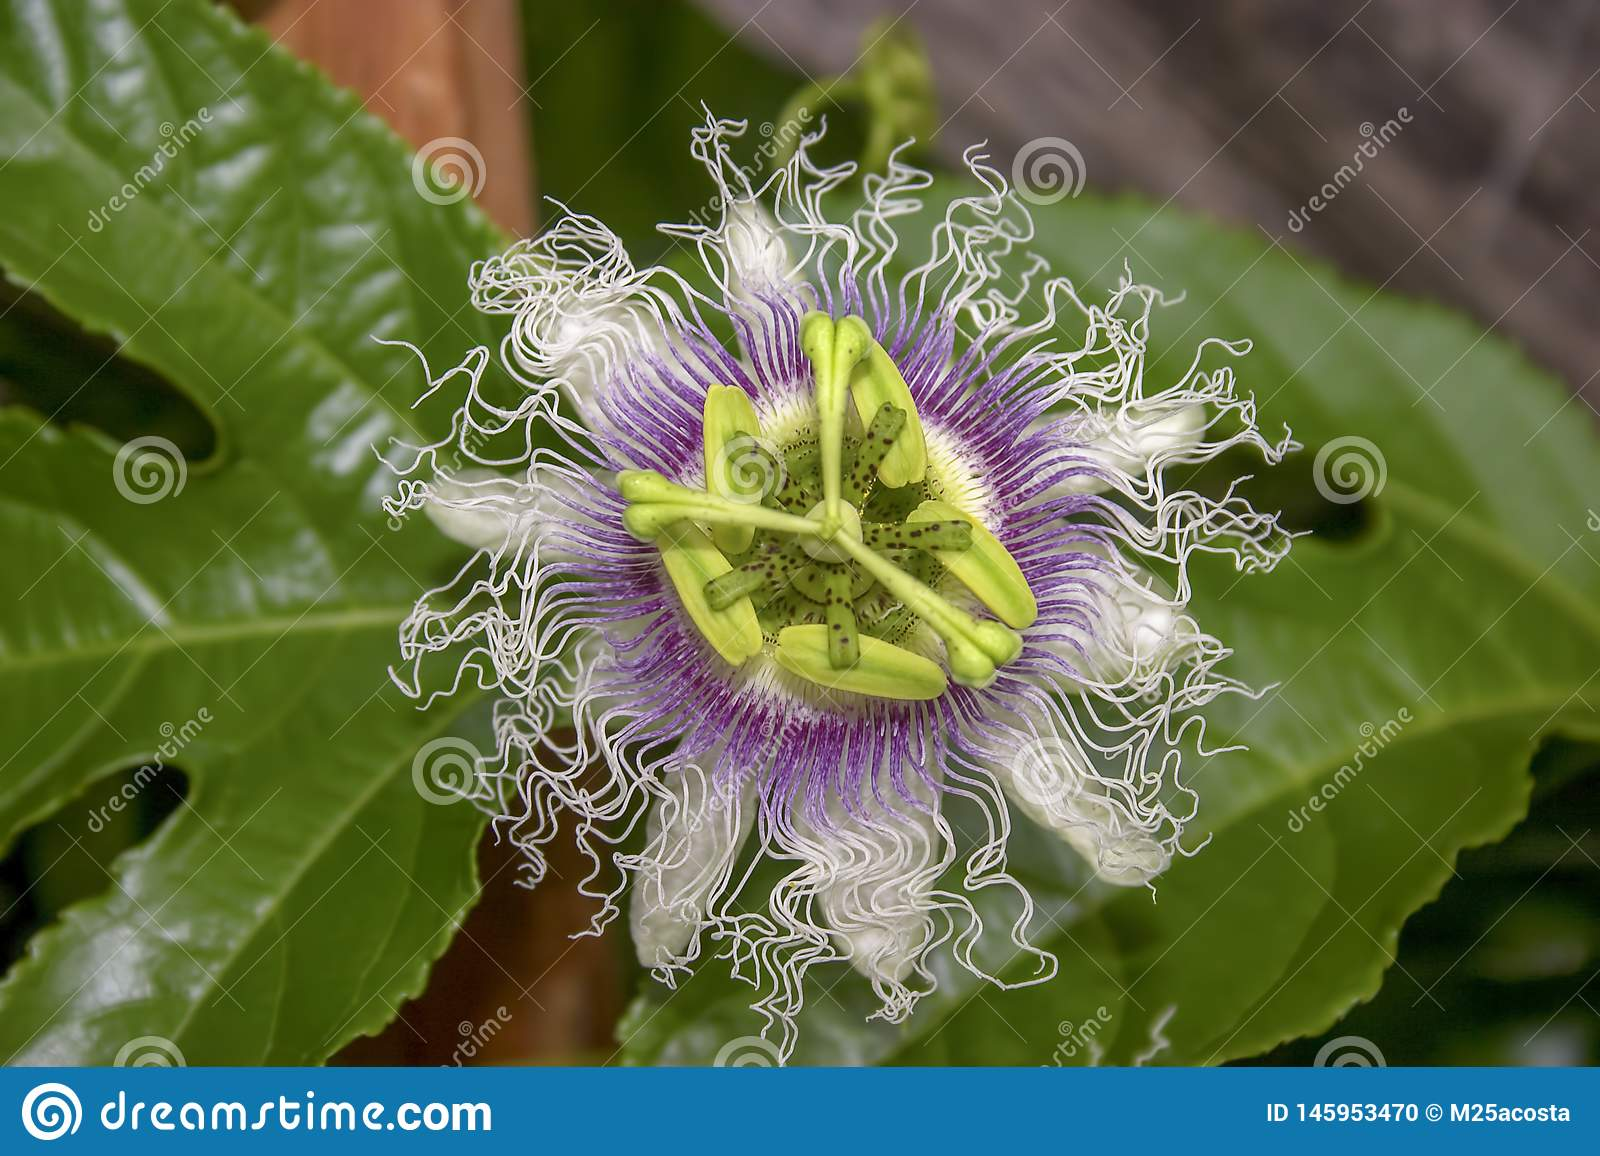 Macro photography of a passion fruit flower